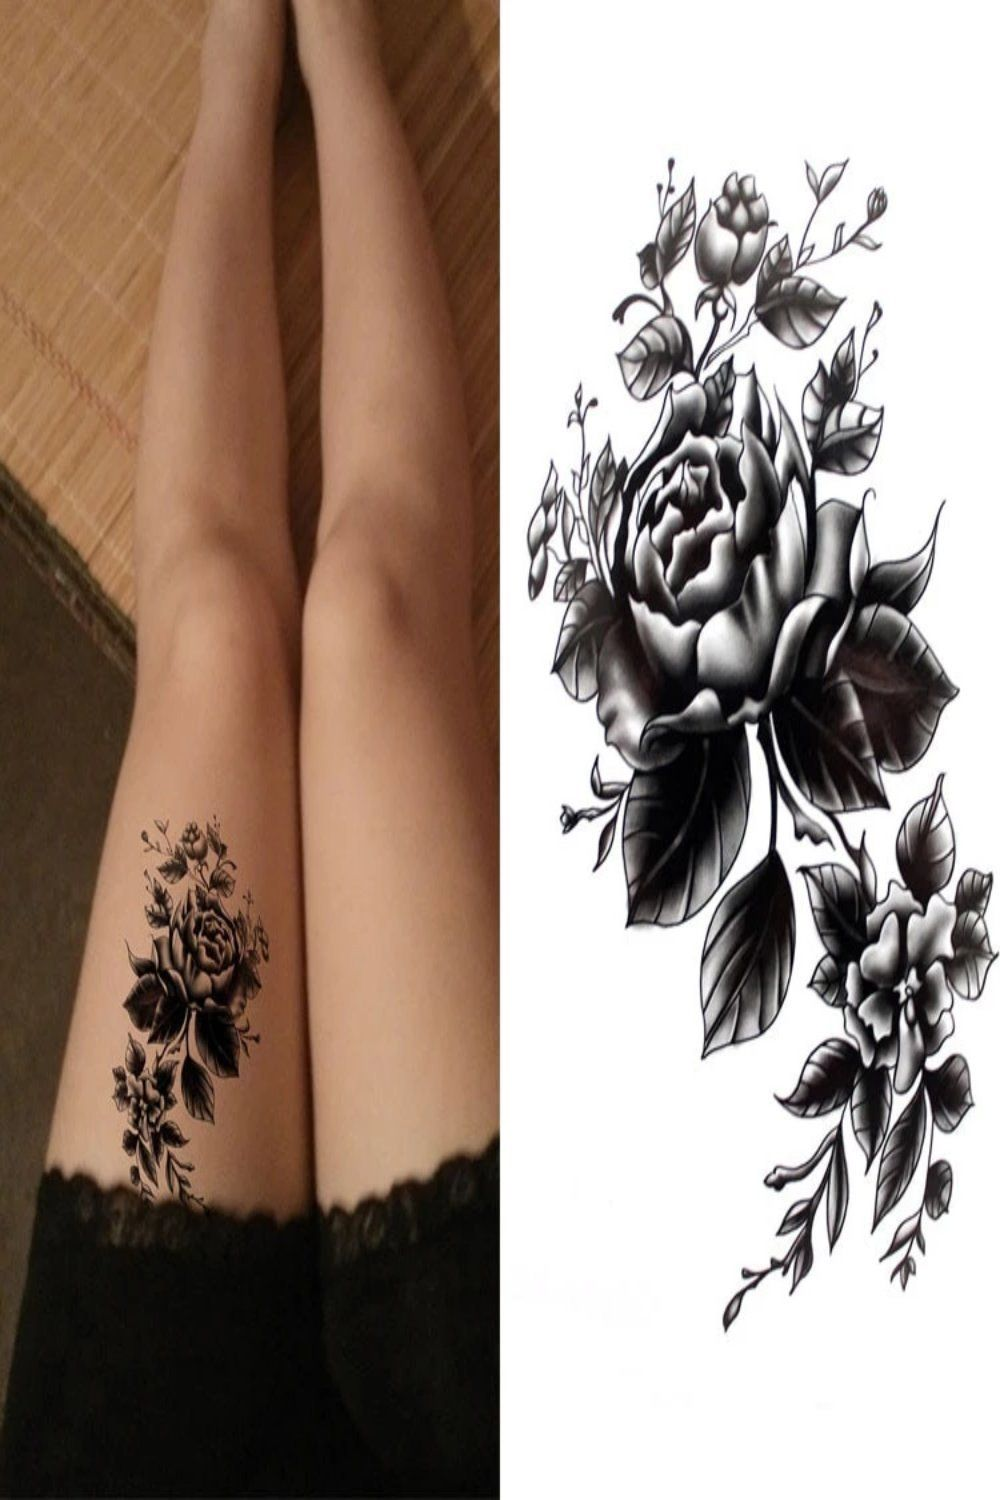 US $1.05 |Black big flower Body Art Waterproof Temporary Sexy thigh tattoos rose For Woman Flash Tattoo Stickers 10*20CM KD1050|flower body art|tattoo rosebody art - AliExpress